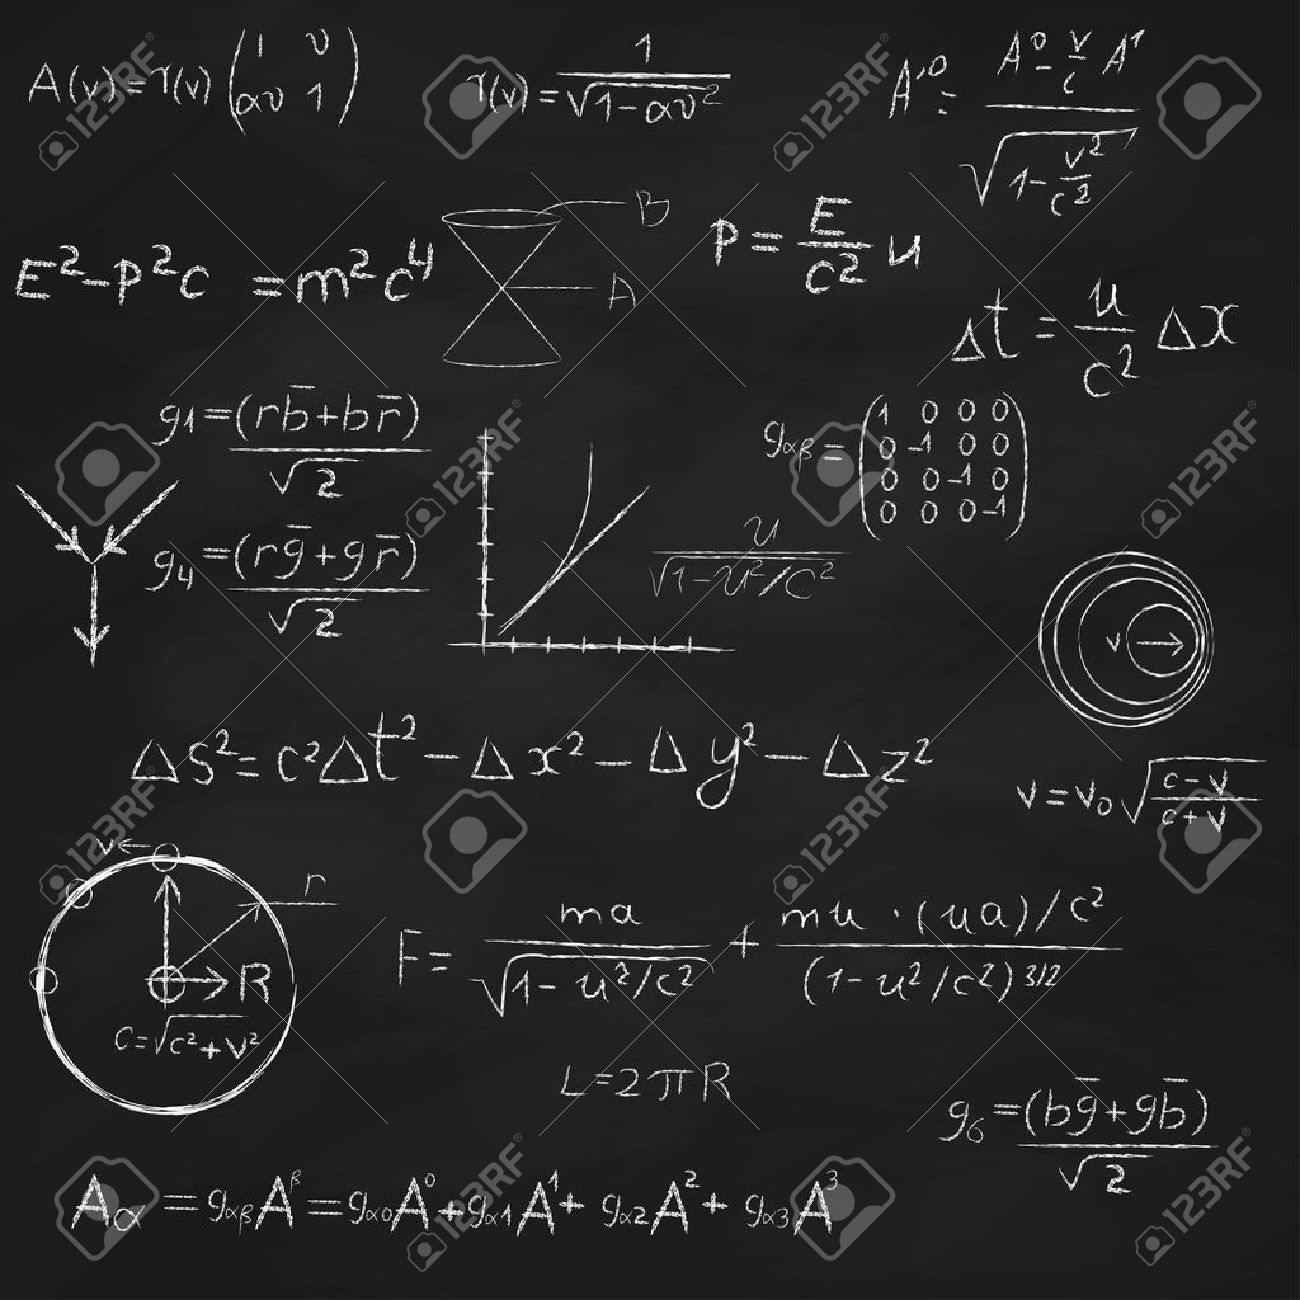 Background with blackboard, with relativity and string theory equations, formulas and hand drawings - 26075917